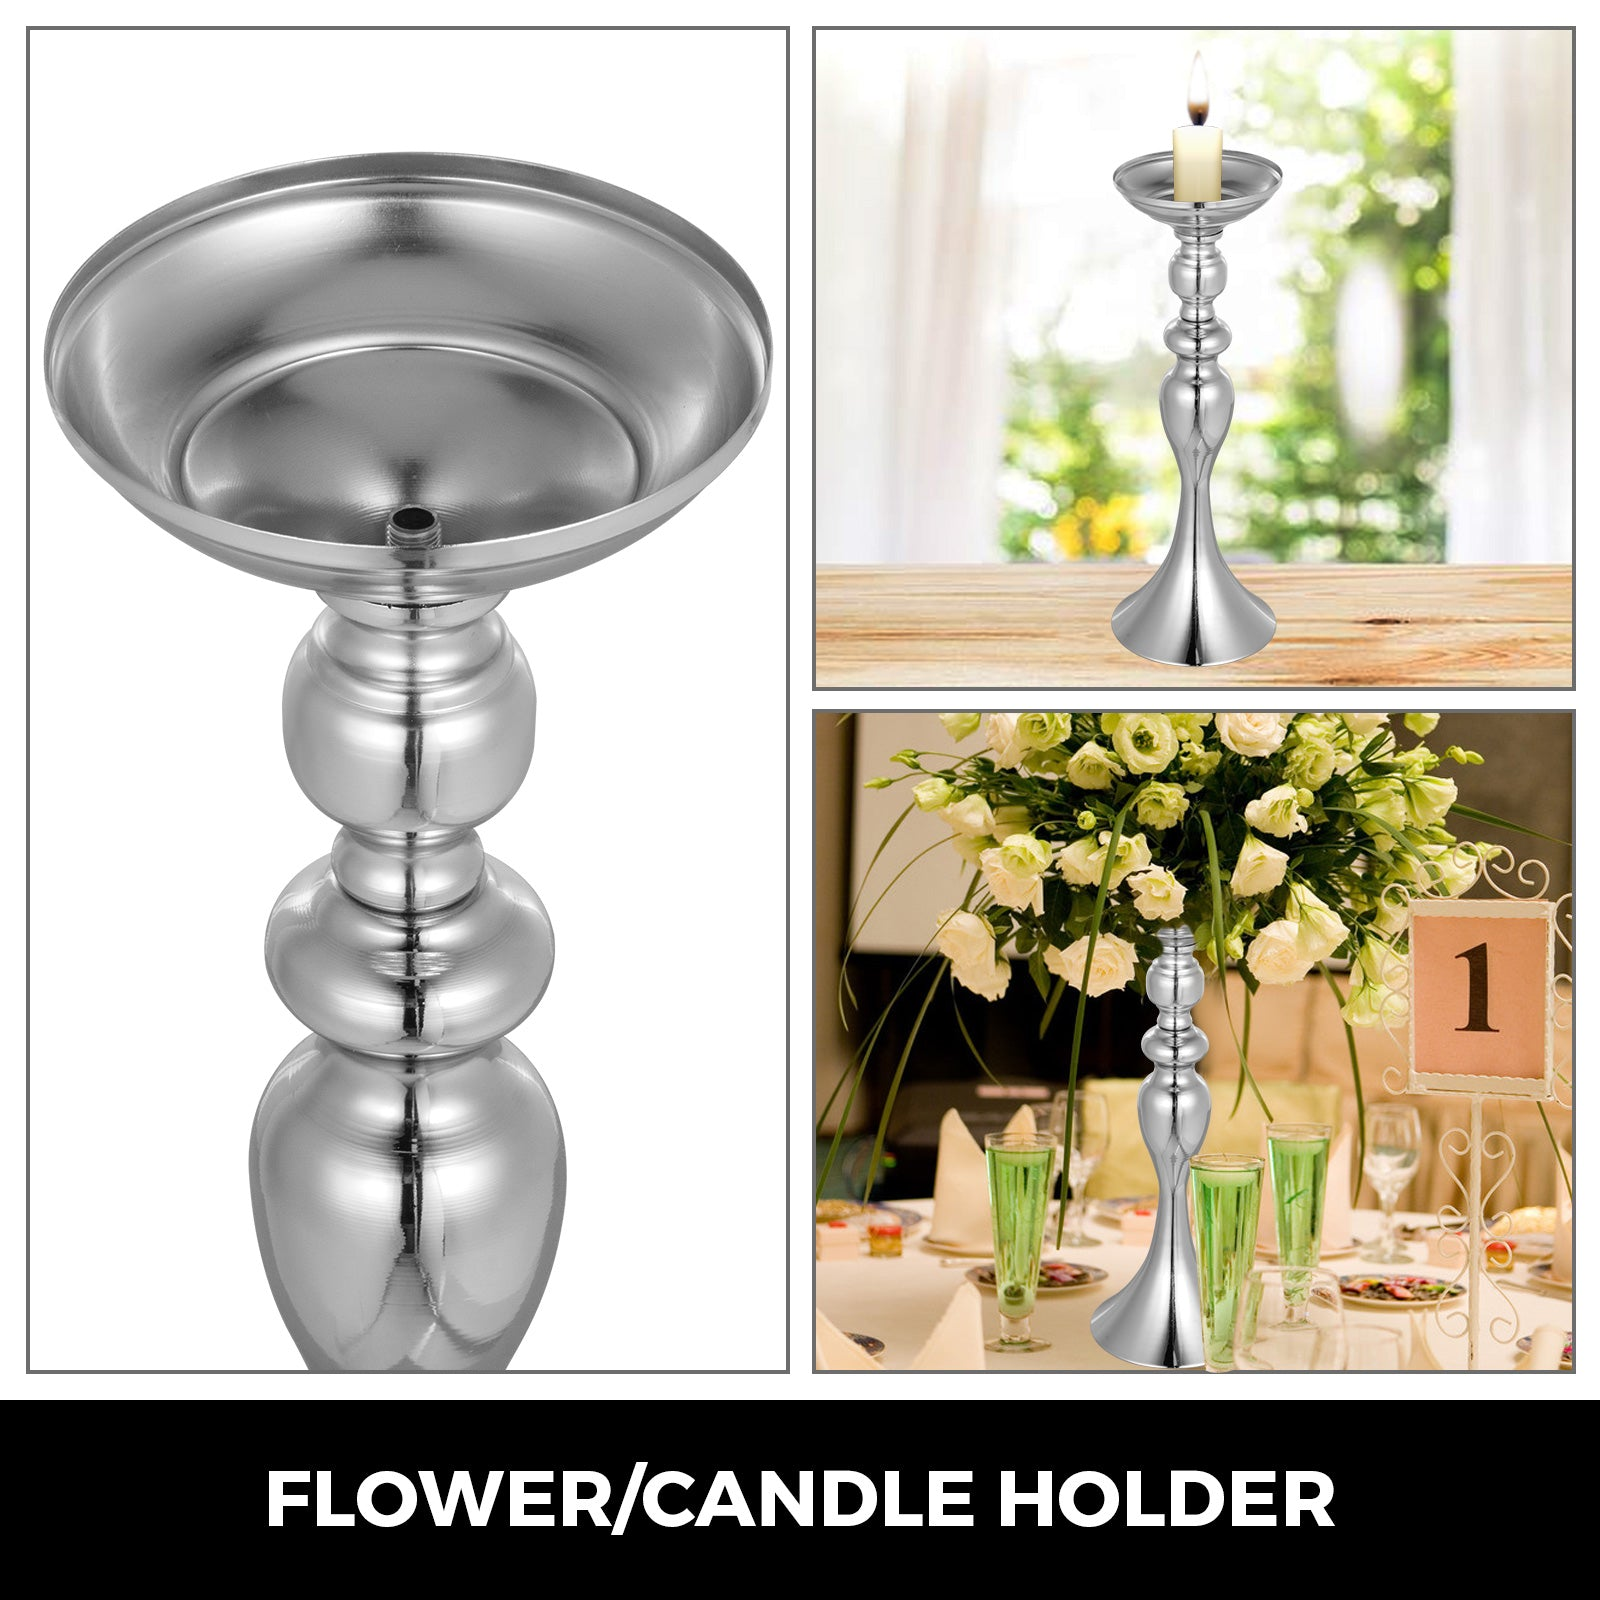 Flower Rack For Wedding Metal Candle Stand 11pcs Silver Centerpiece Flower Vase